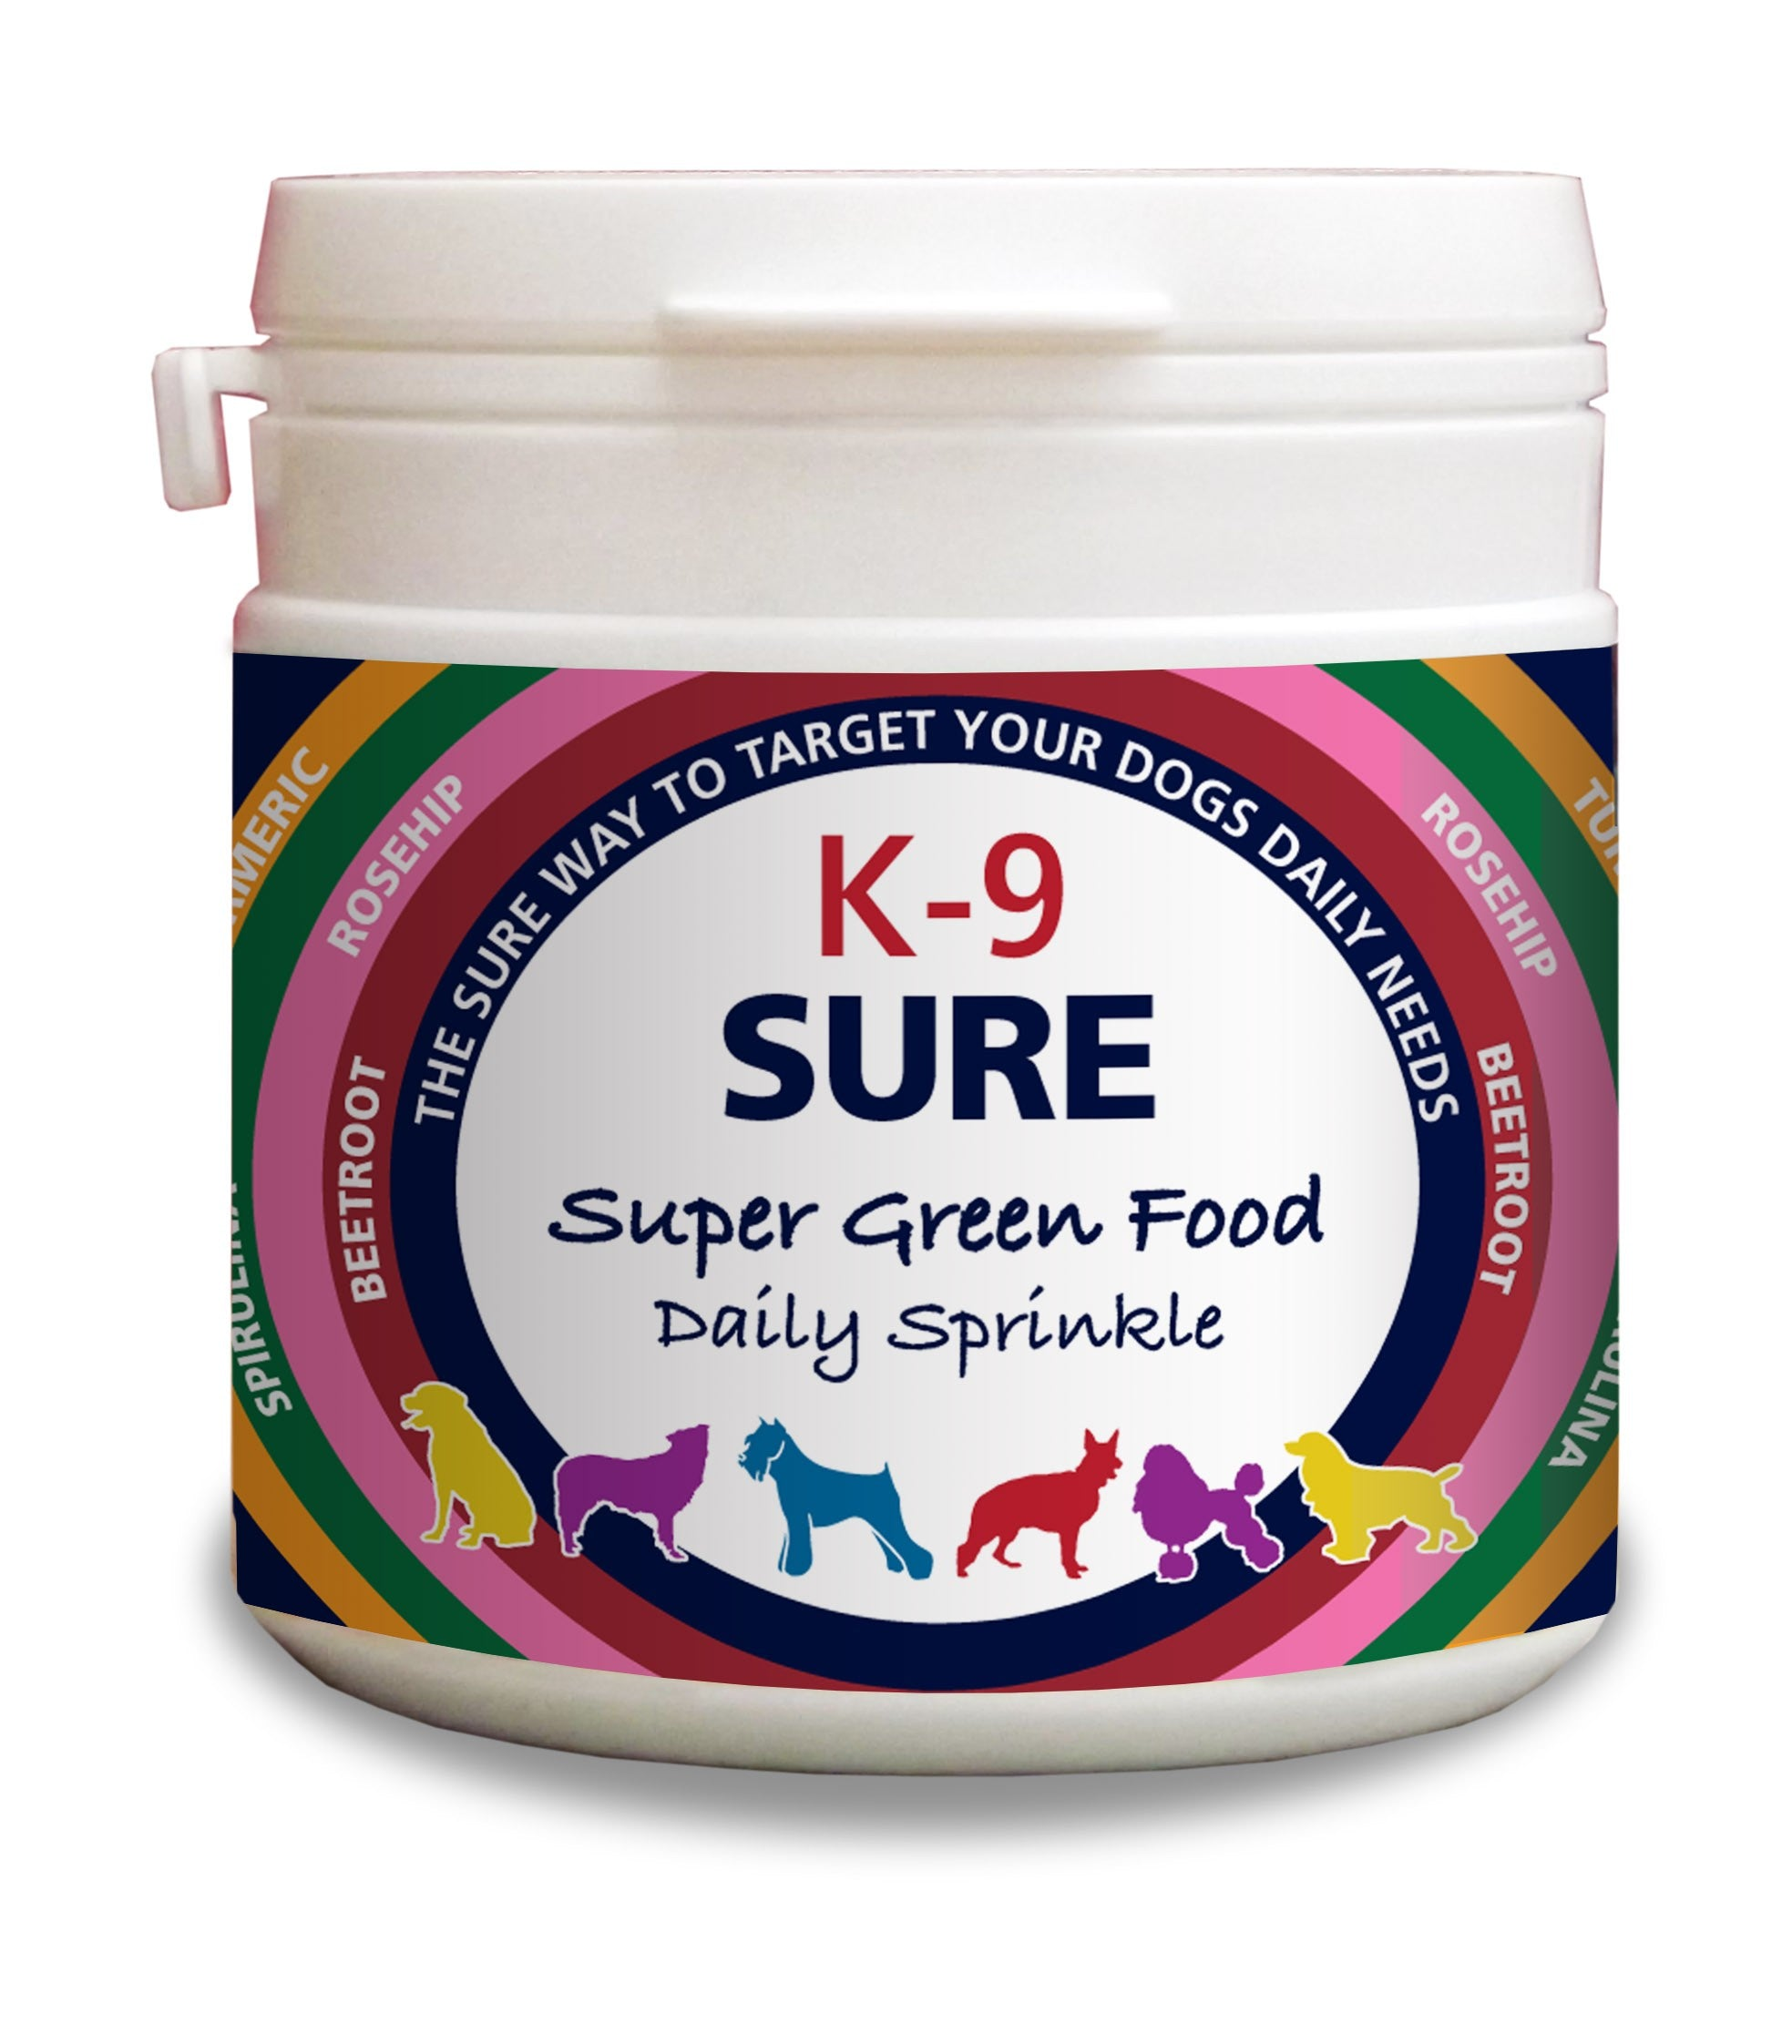 Phytopet K-9 Sure Super Green Food Nutritional Supplement Optimum Health and Wellbeing Daily Sprinkle Supplement